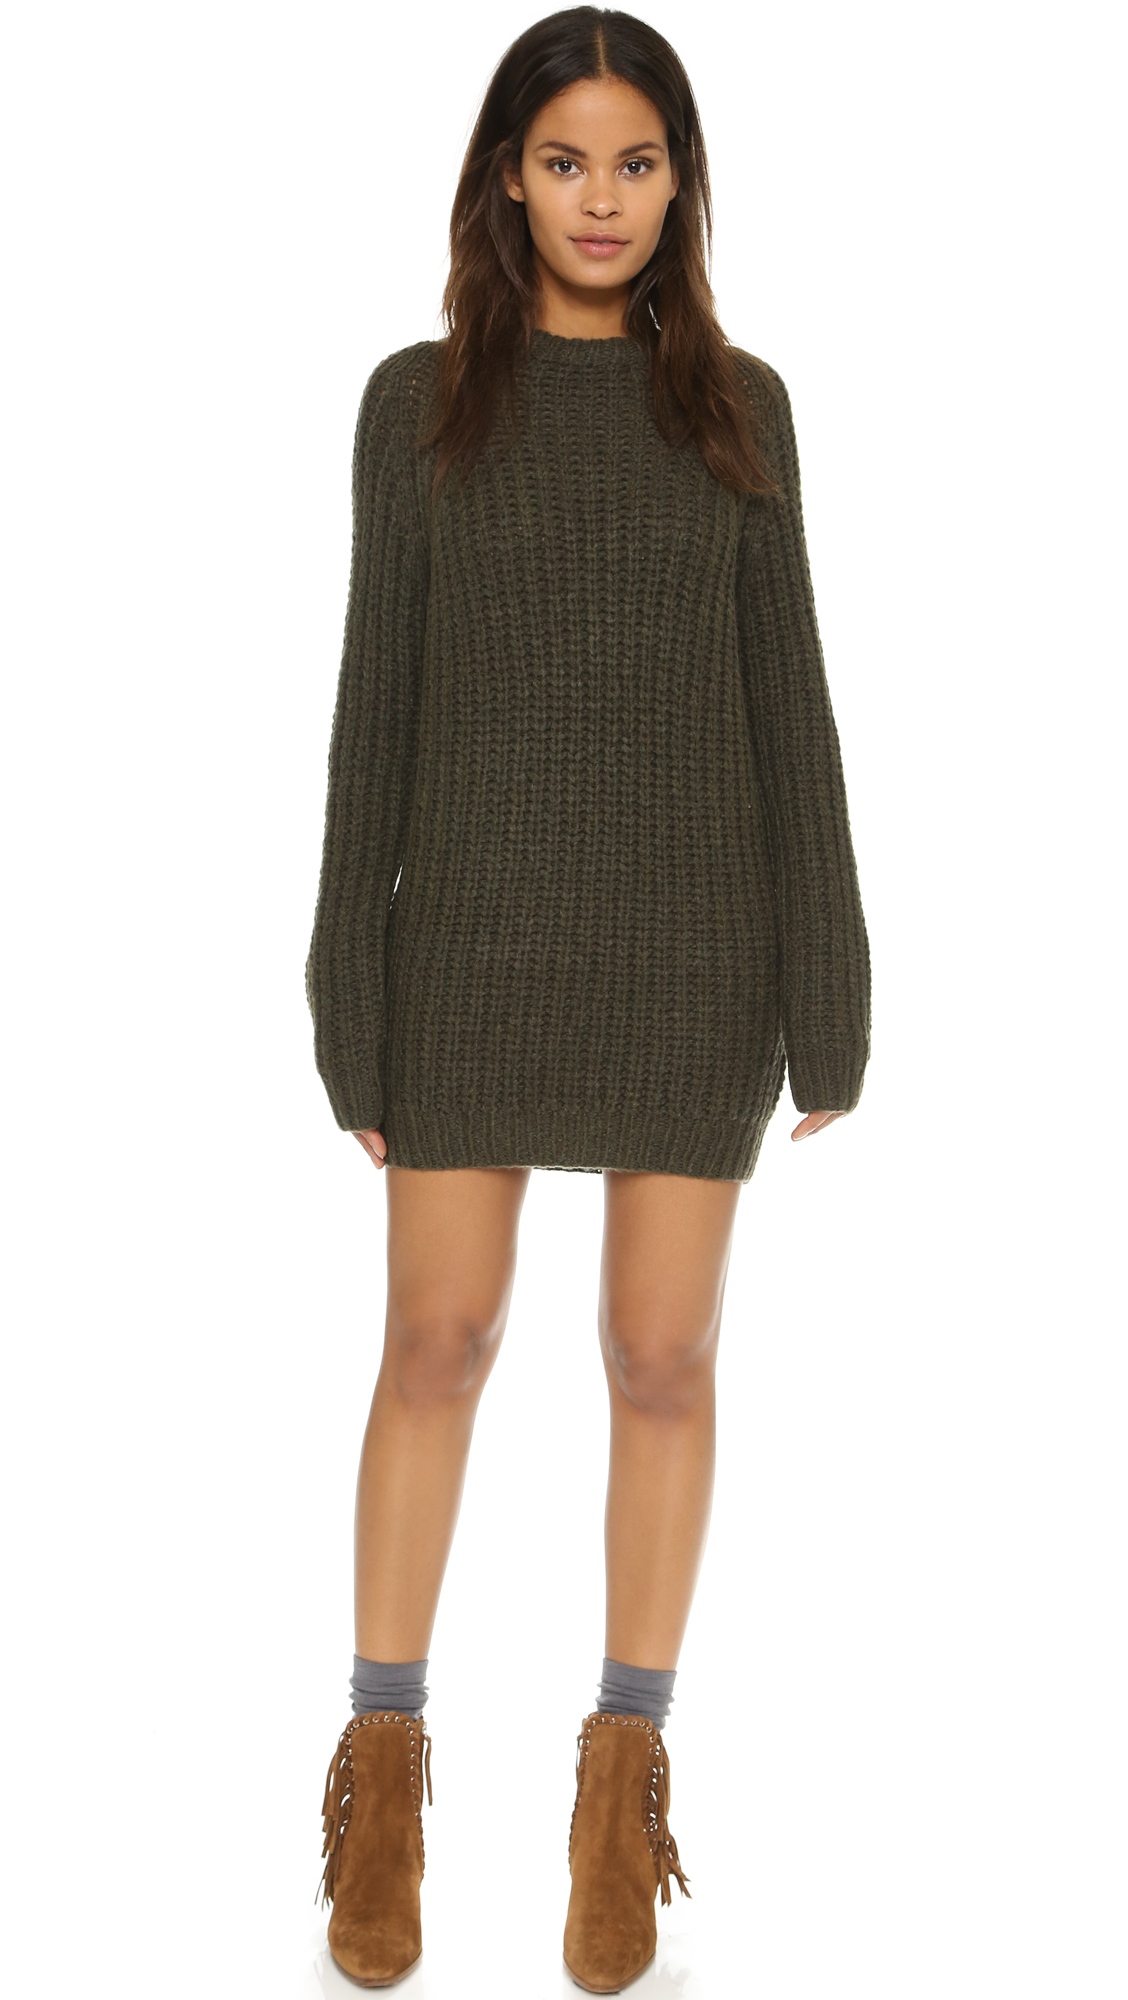 772909006 Lyst - NLST Fisherman Sweater Dress - Olive Drab in Green